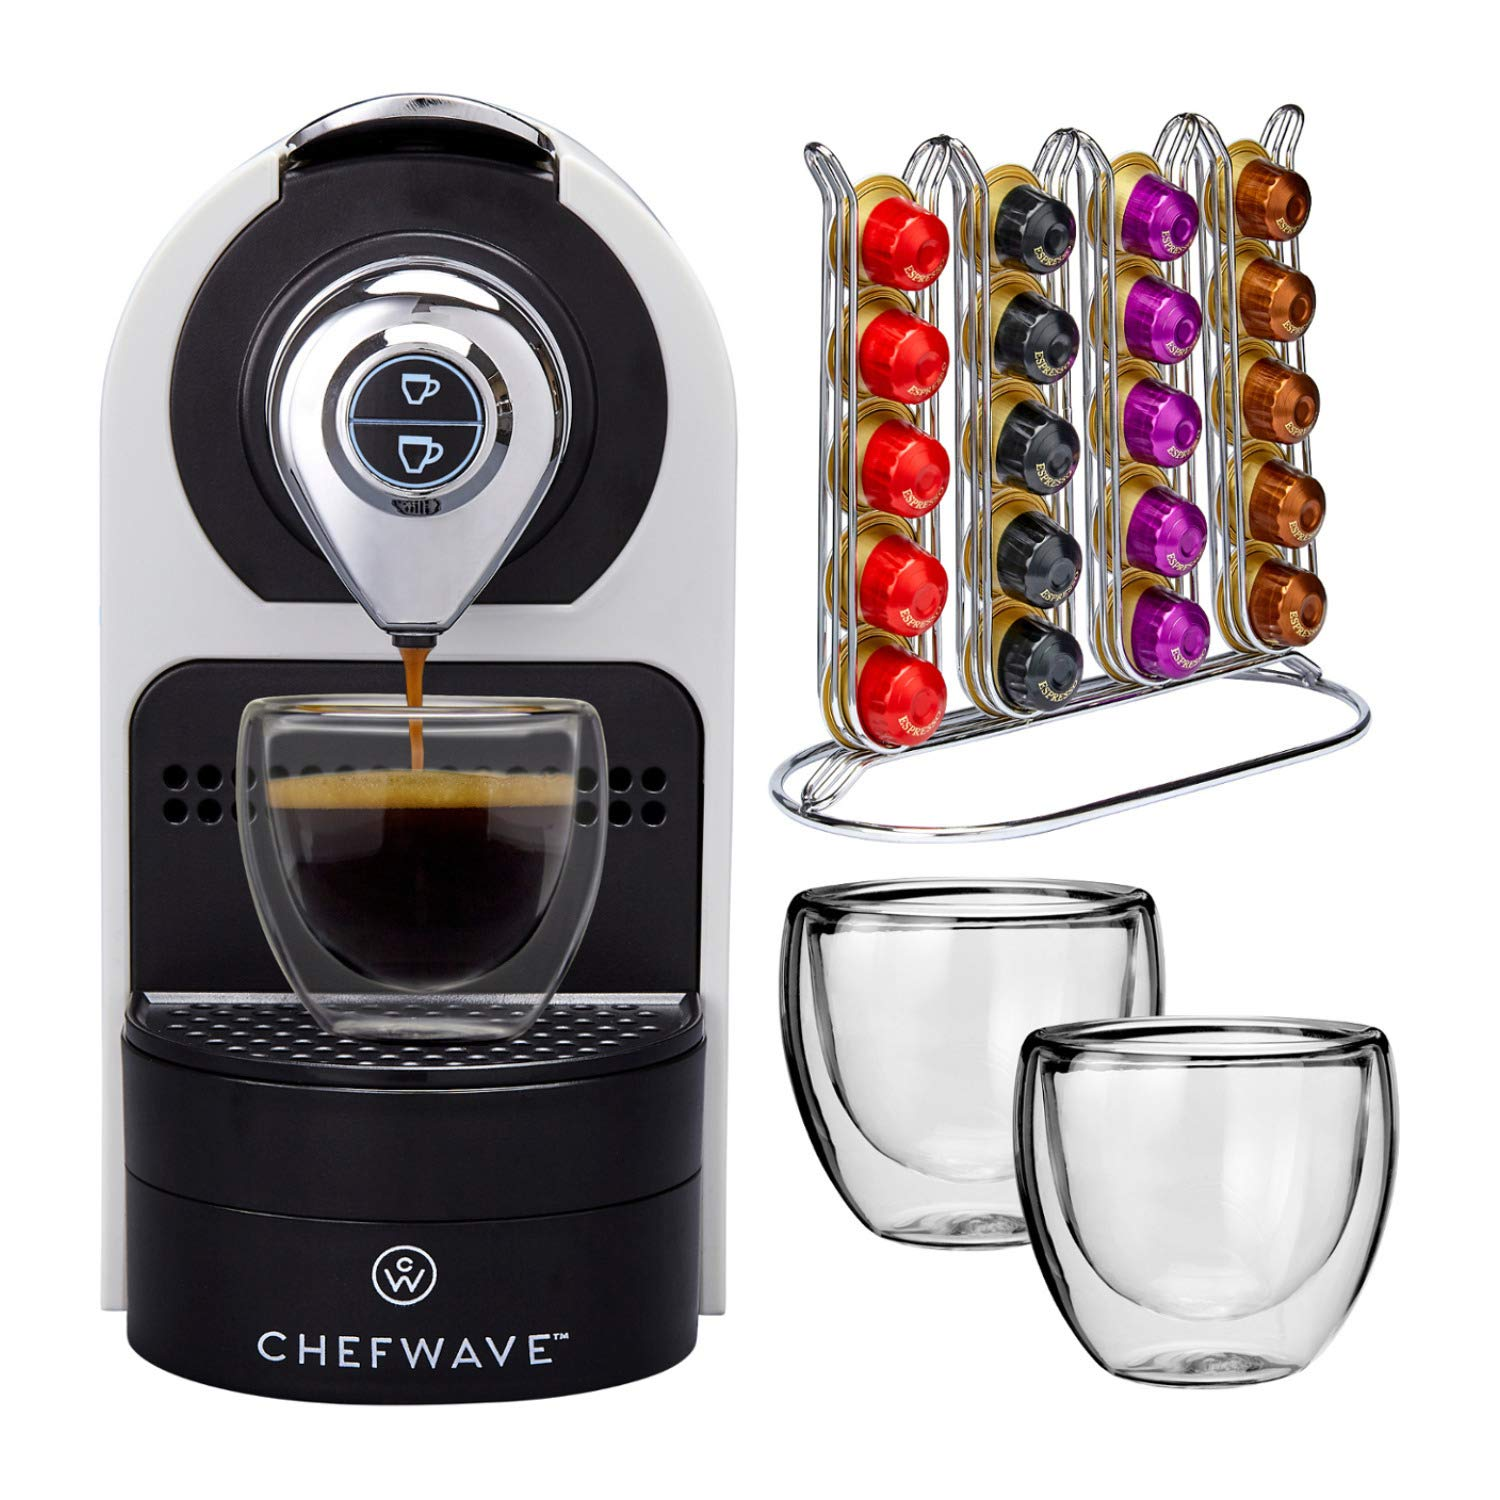 ChefWave Mini Espresso Machine - Nespresso Capsules Compatible - Programmable One-Touch 27 Oz. Water Tank, Premium Italian 20 Bar High Pressure Pump - 40 Pod Holder, 2 Double-Wall Glass Cups - White by ChefWave (Image #2)